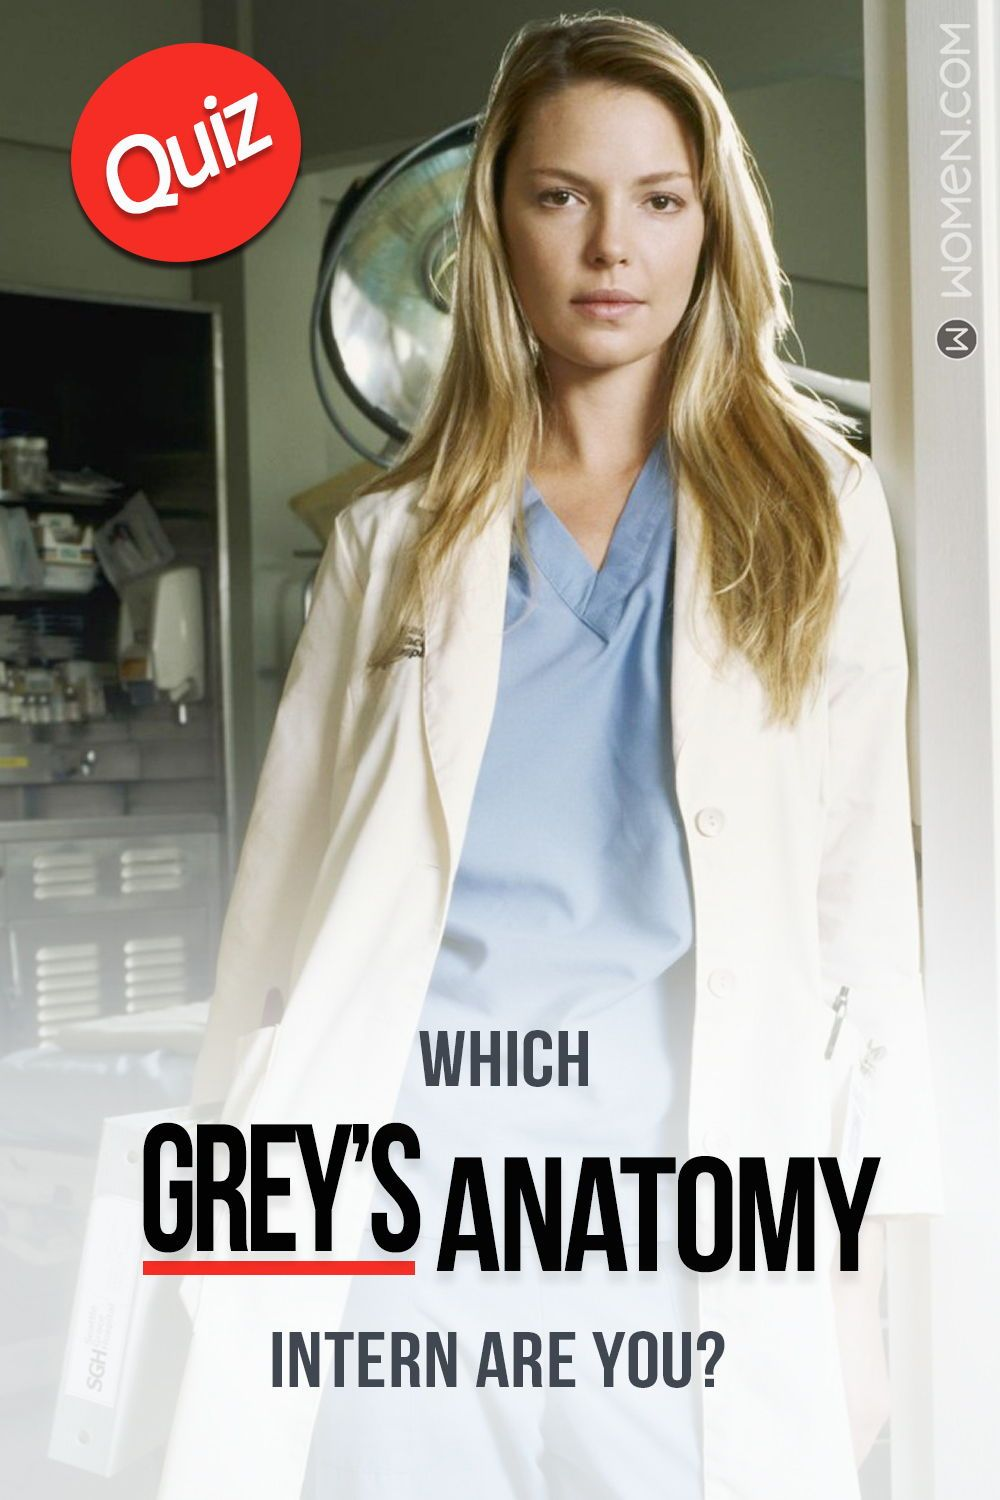 Quiz: Which Grey's Anatomy Intern Are You? #greysanatomy